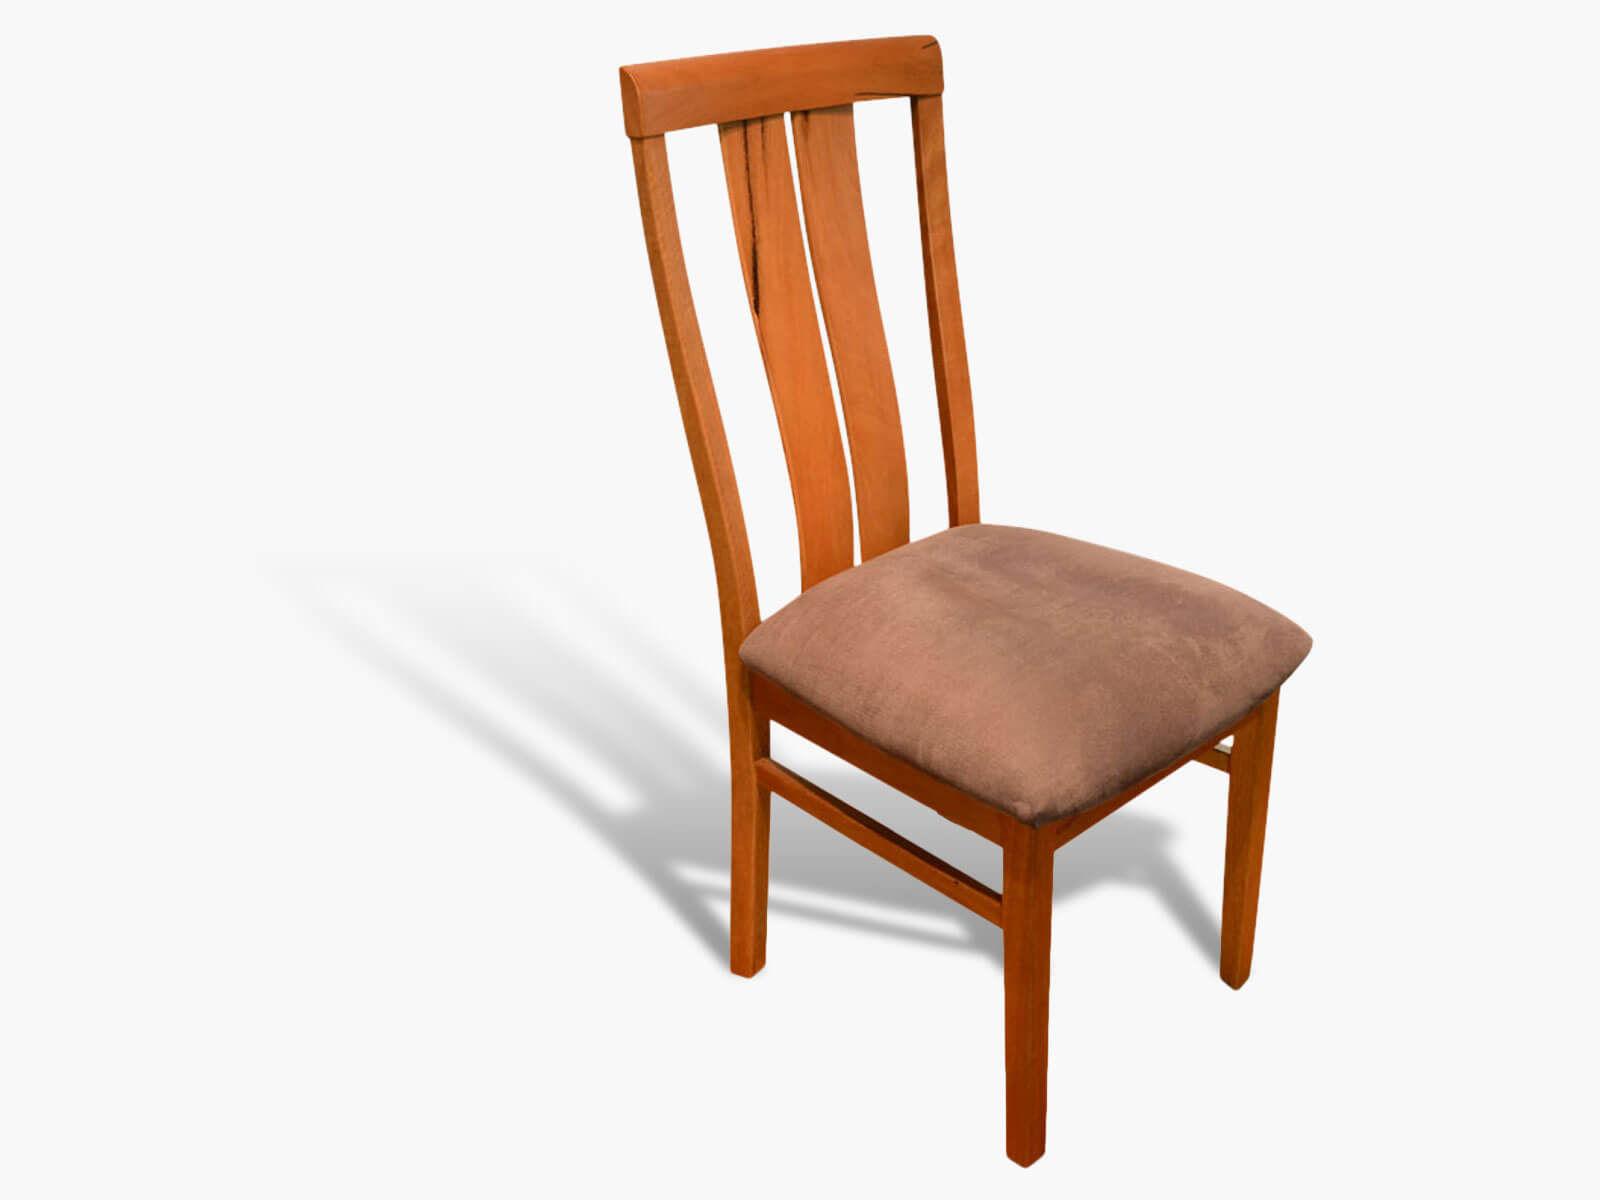 Broome-Marri-Dining-Chair Timber Furniture